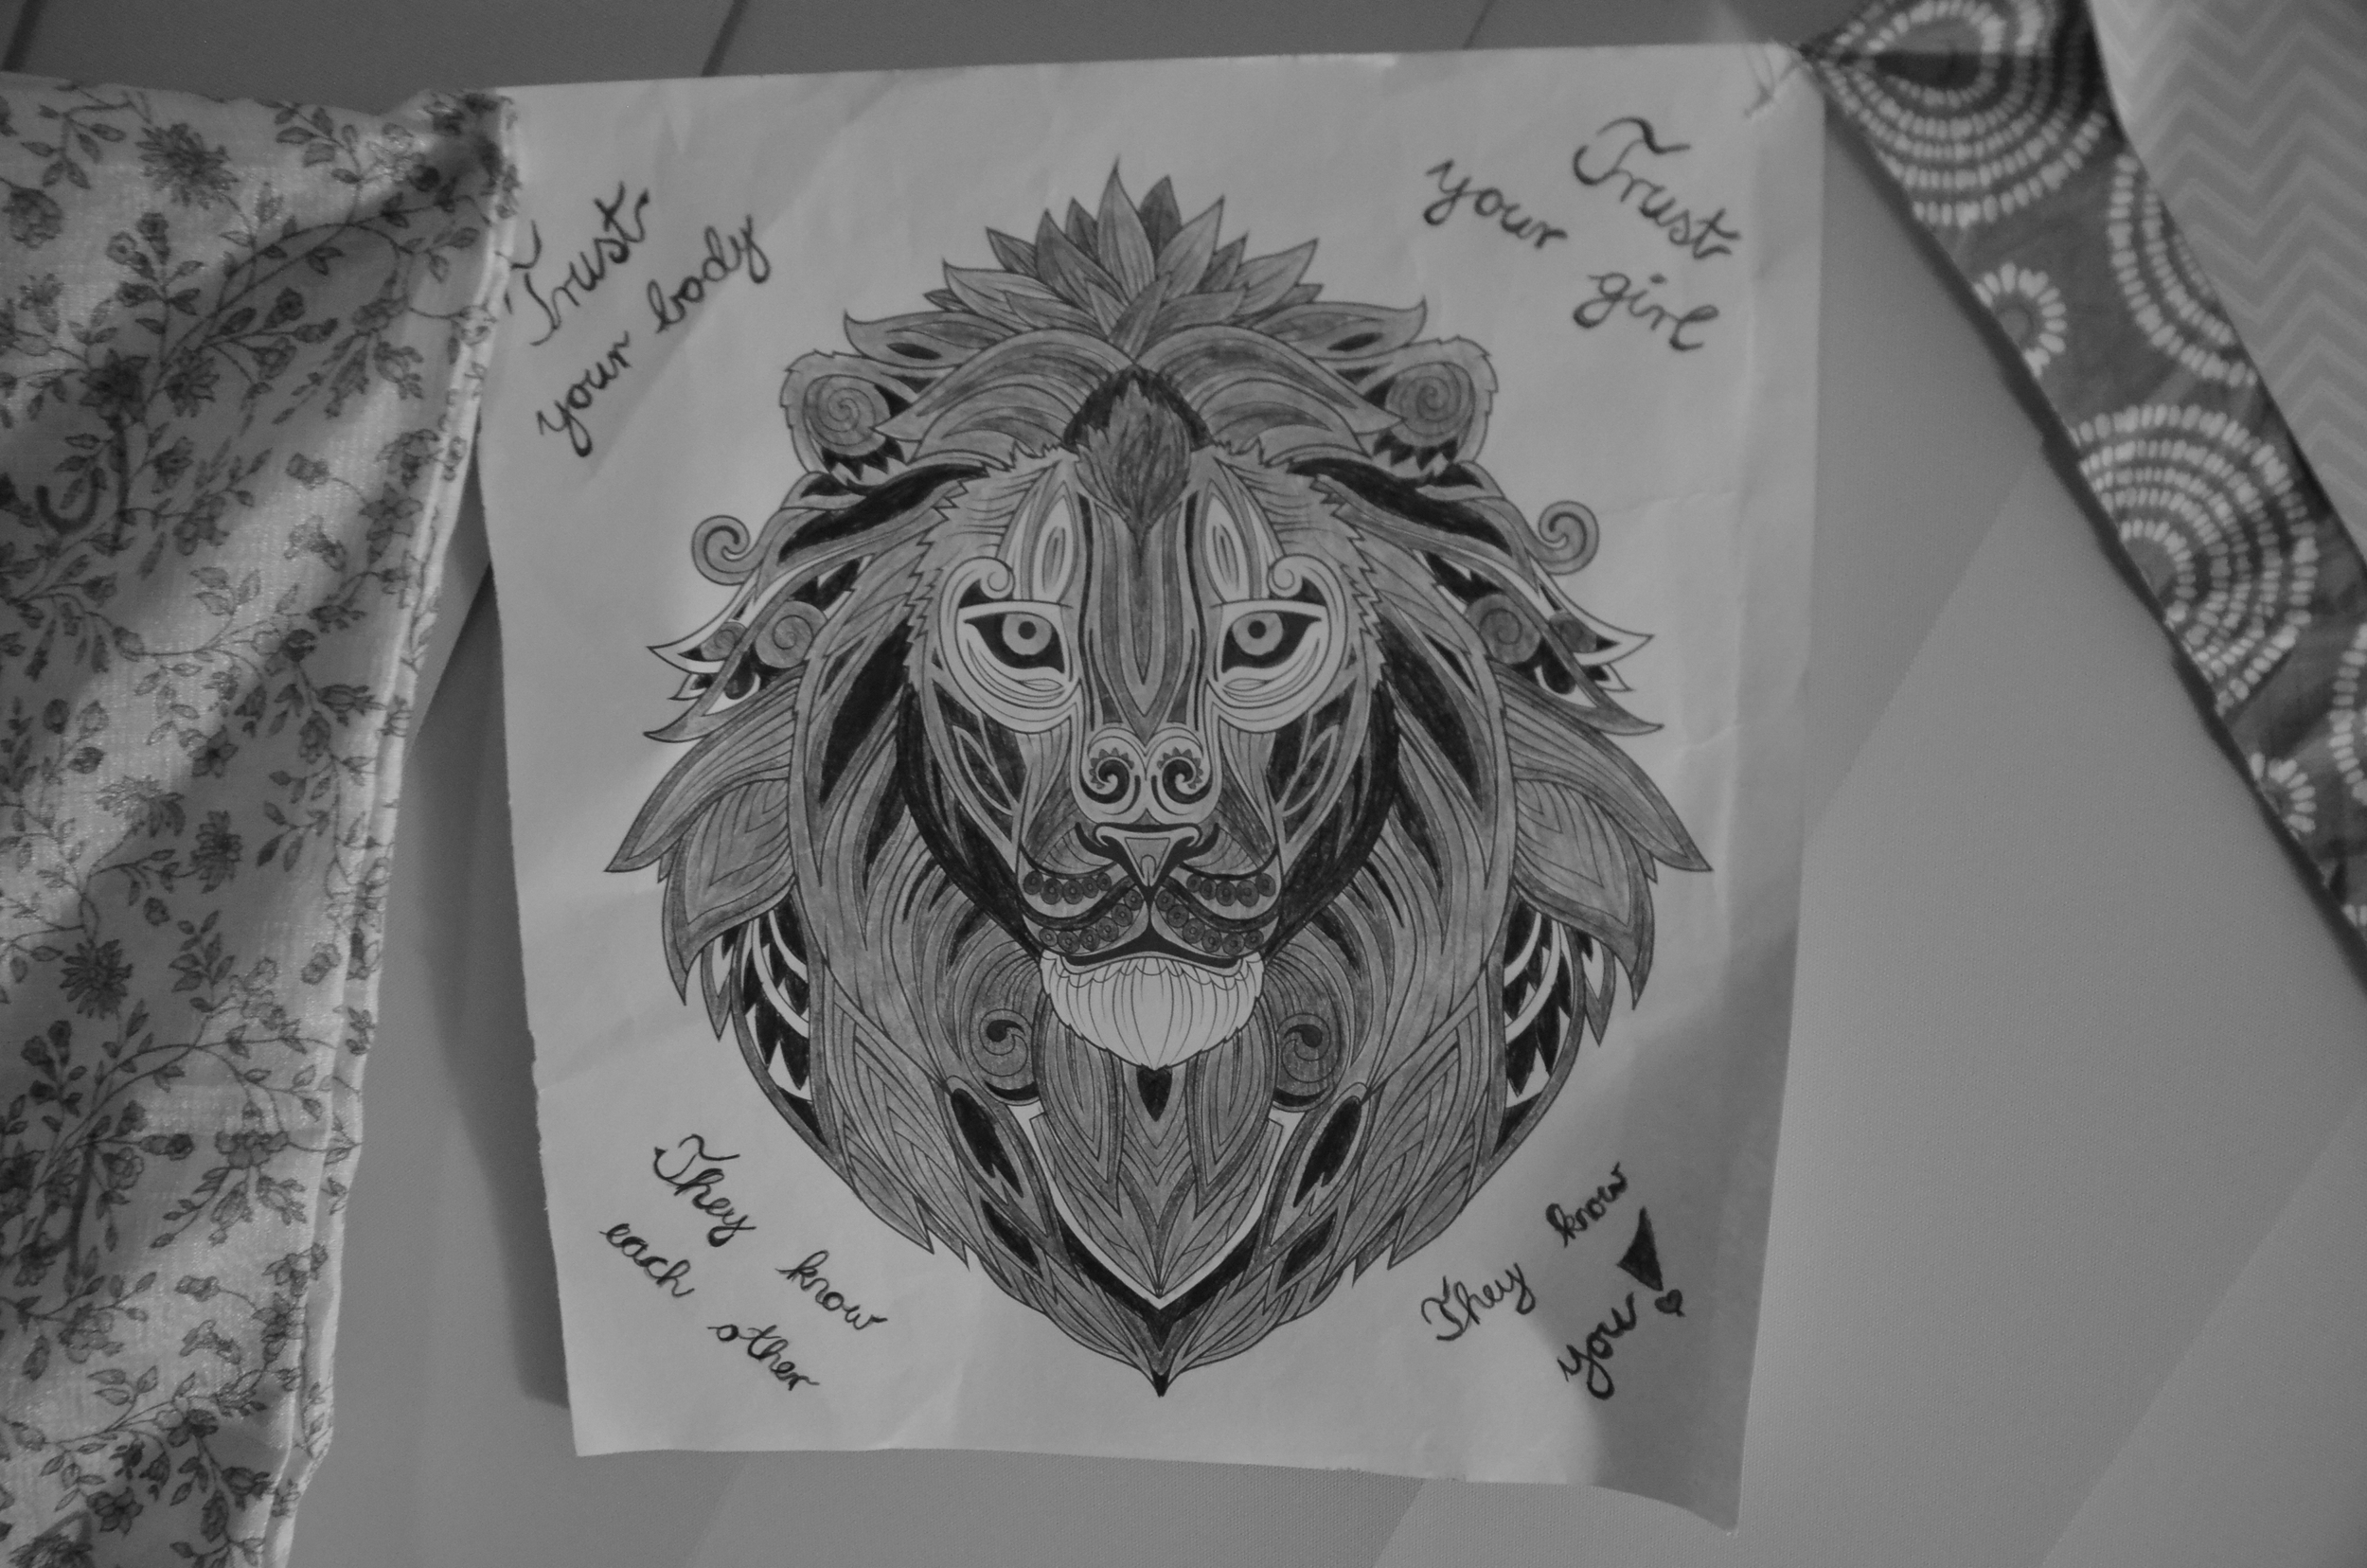 One of my prayer flags from the Blessingway - with a lion, my totem animal.